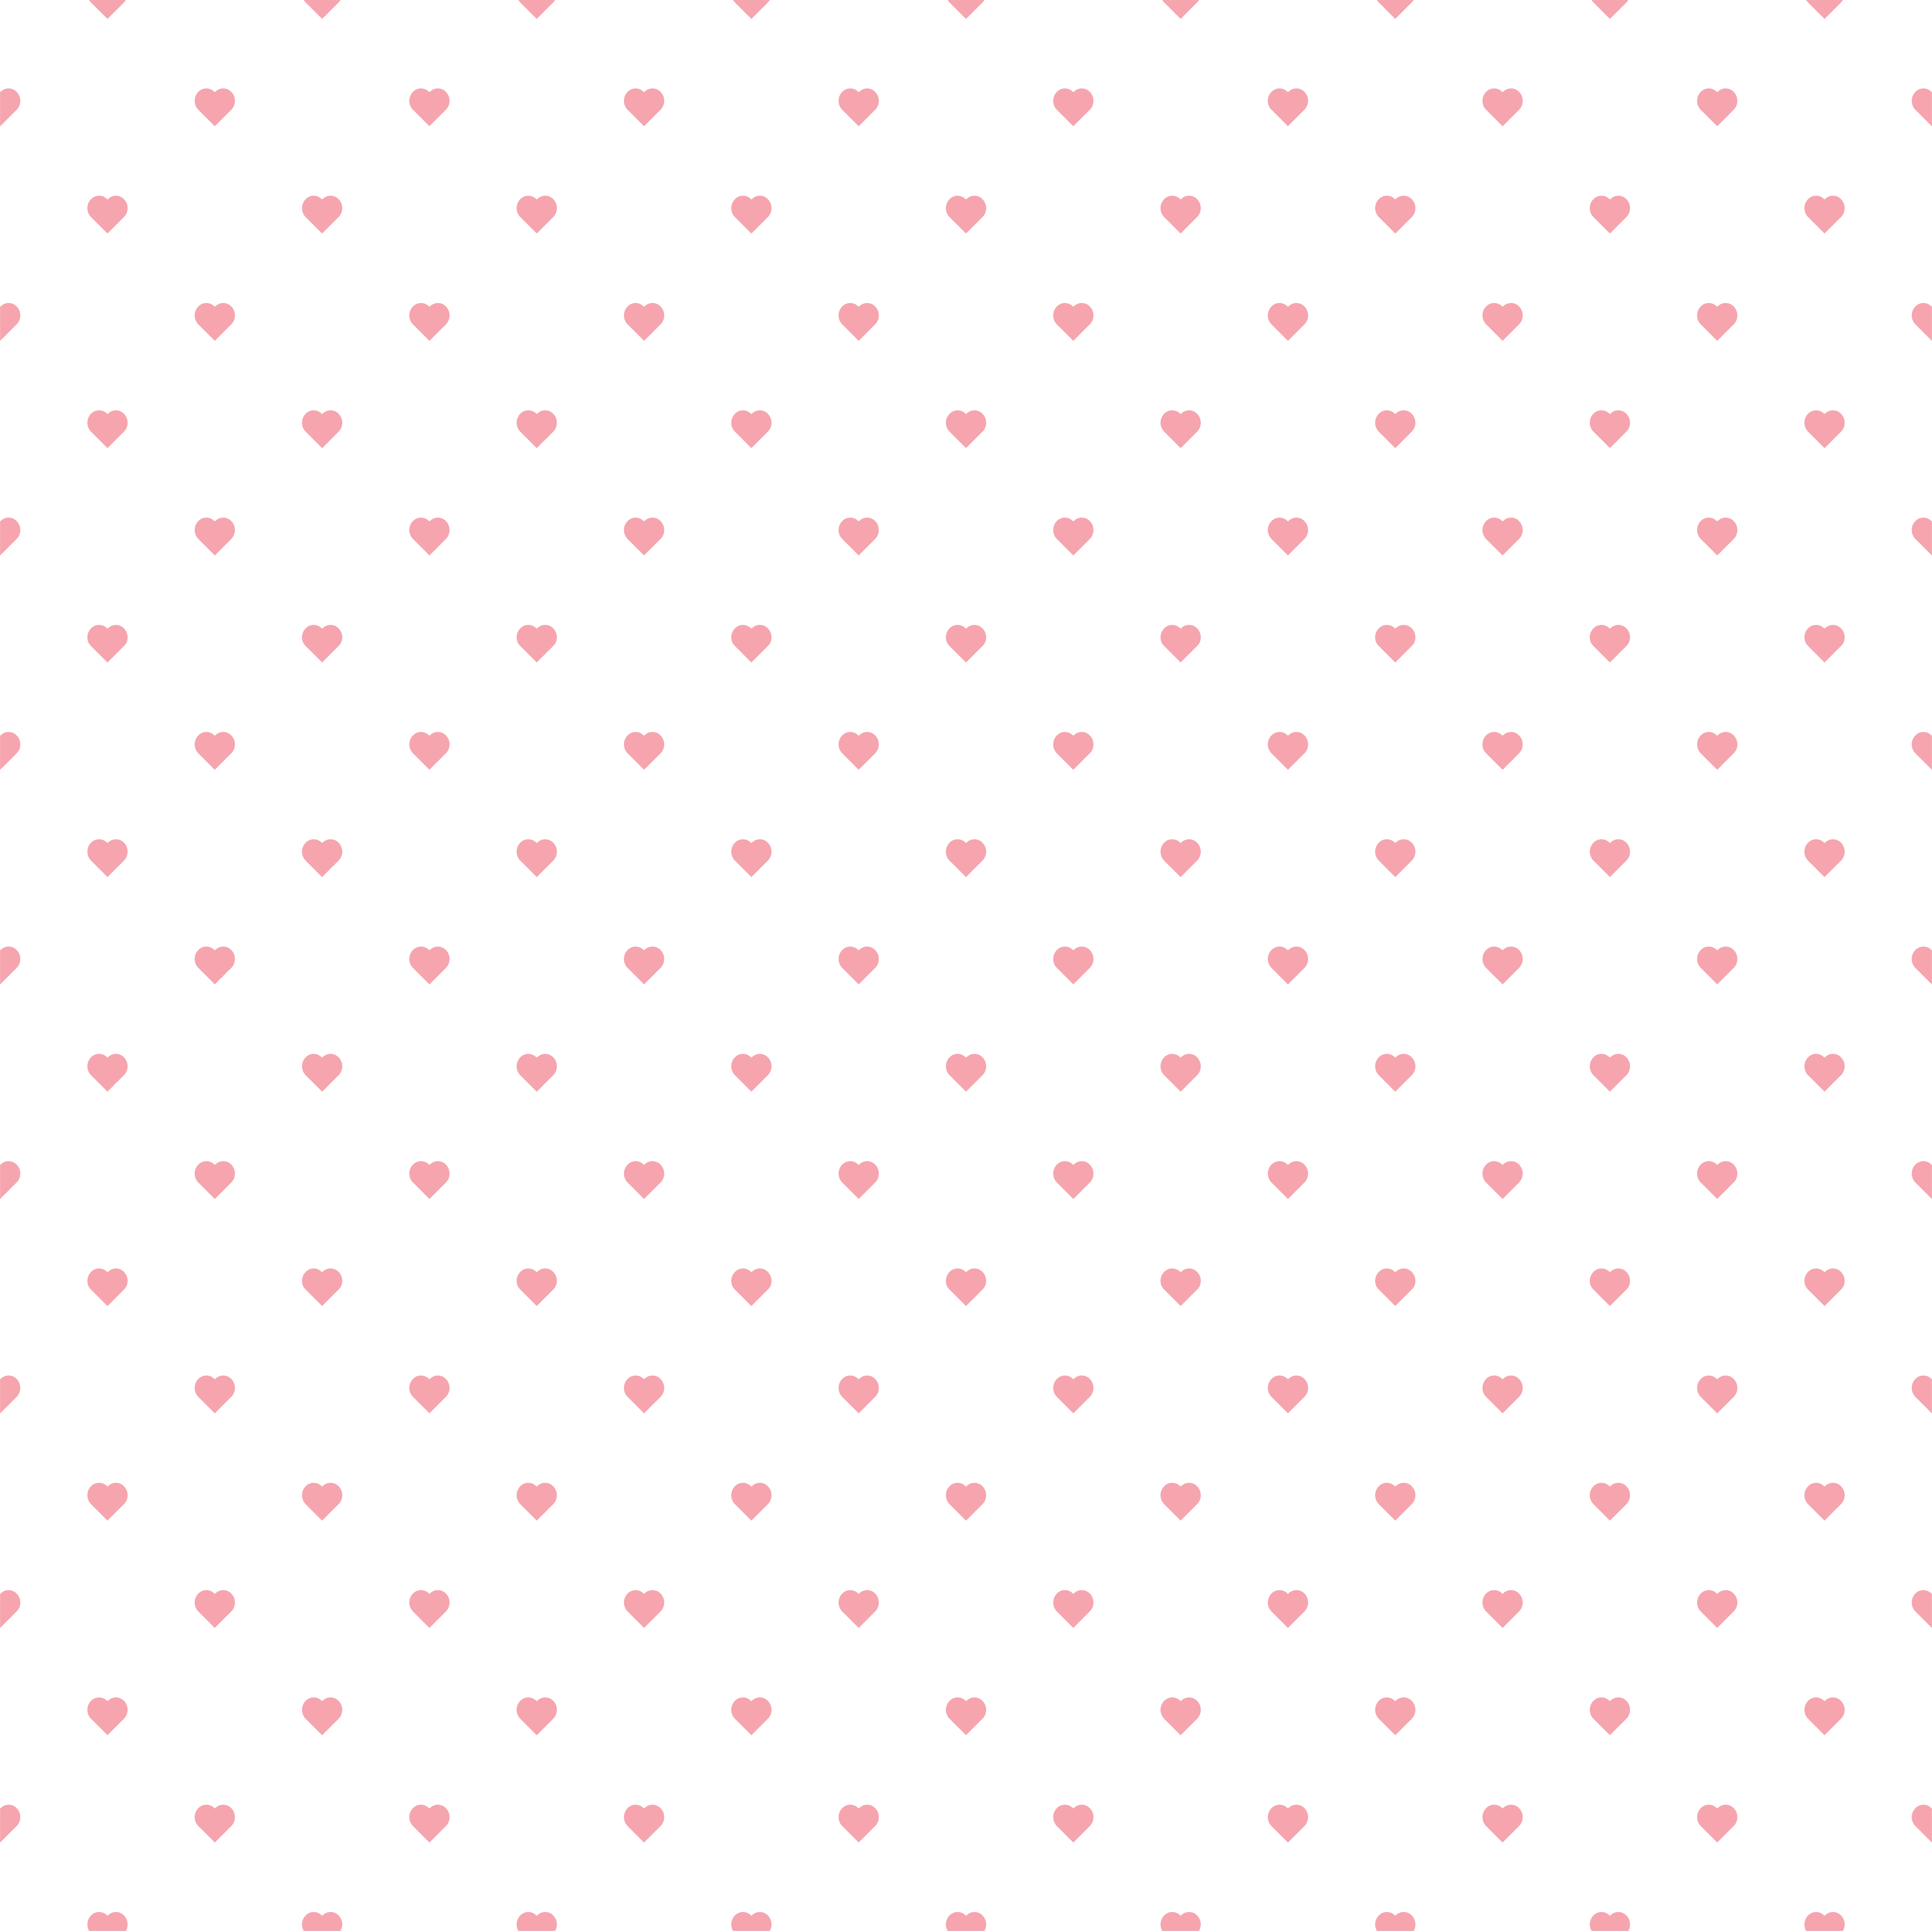 Pink Hearts for Background PNG Clip Art Image.